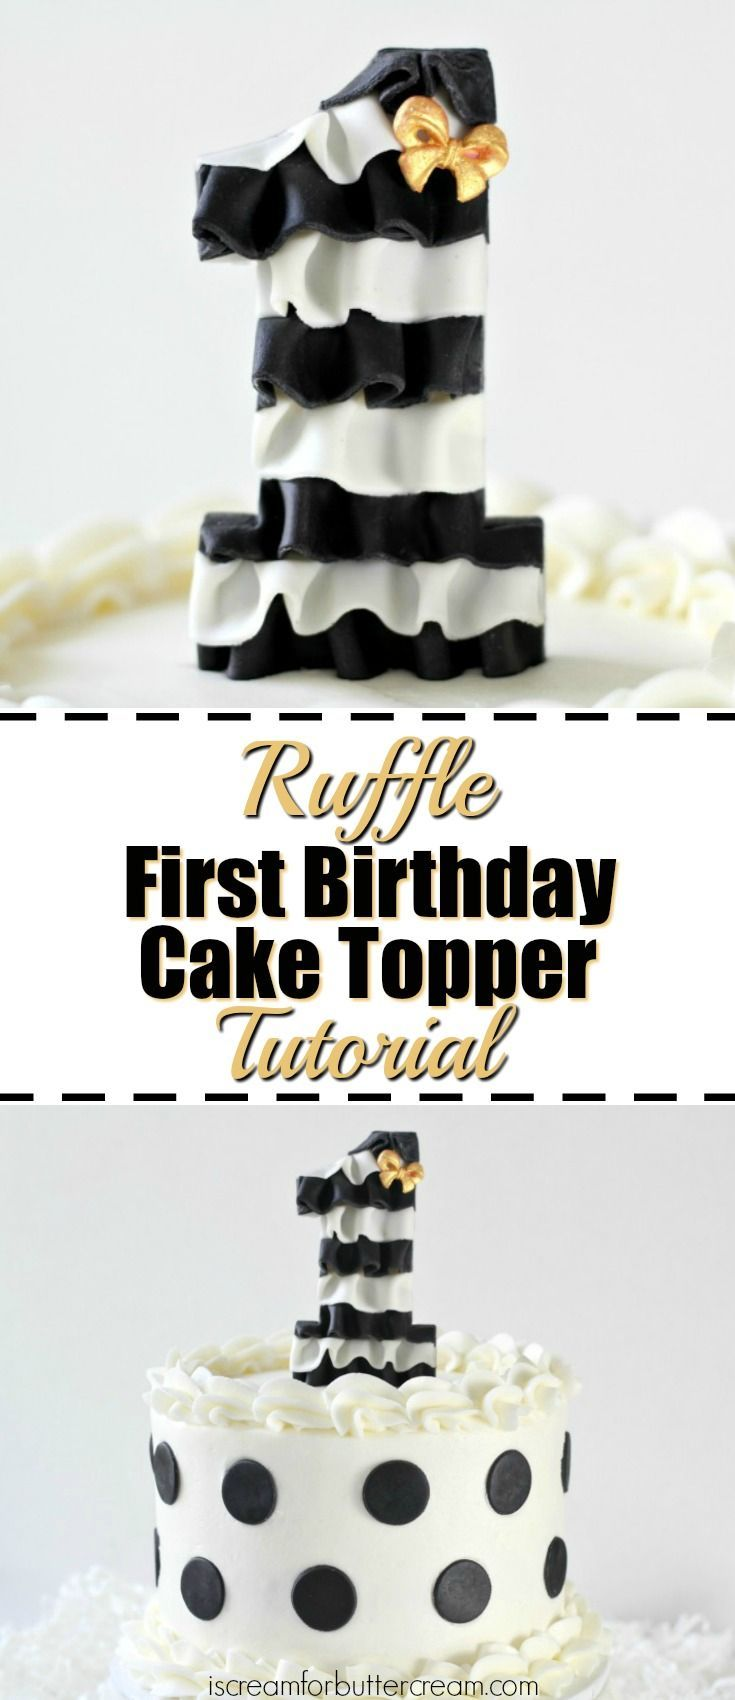 These DIY cake toppers are a quick and easy way to decorate a first birthday cake. Just pop one into your cake and you've got a beautiful custom look.